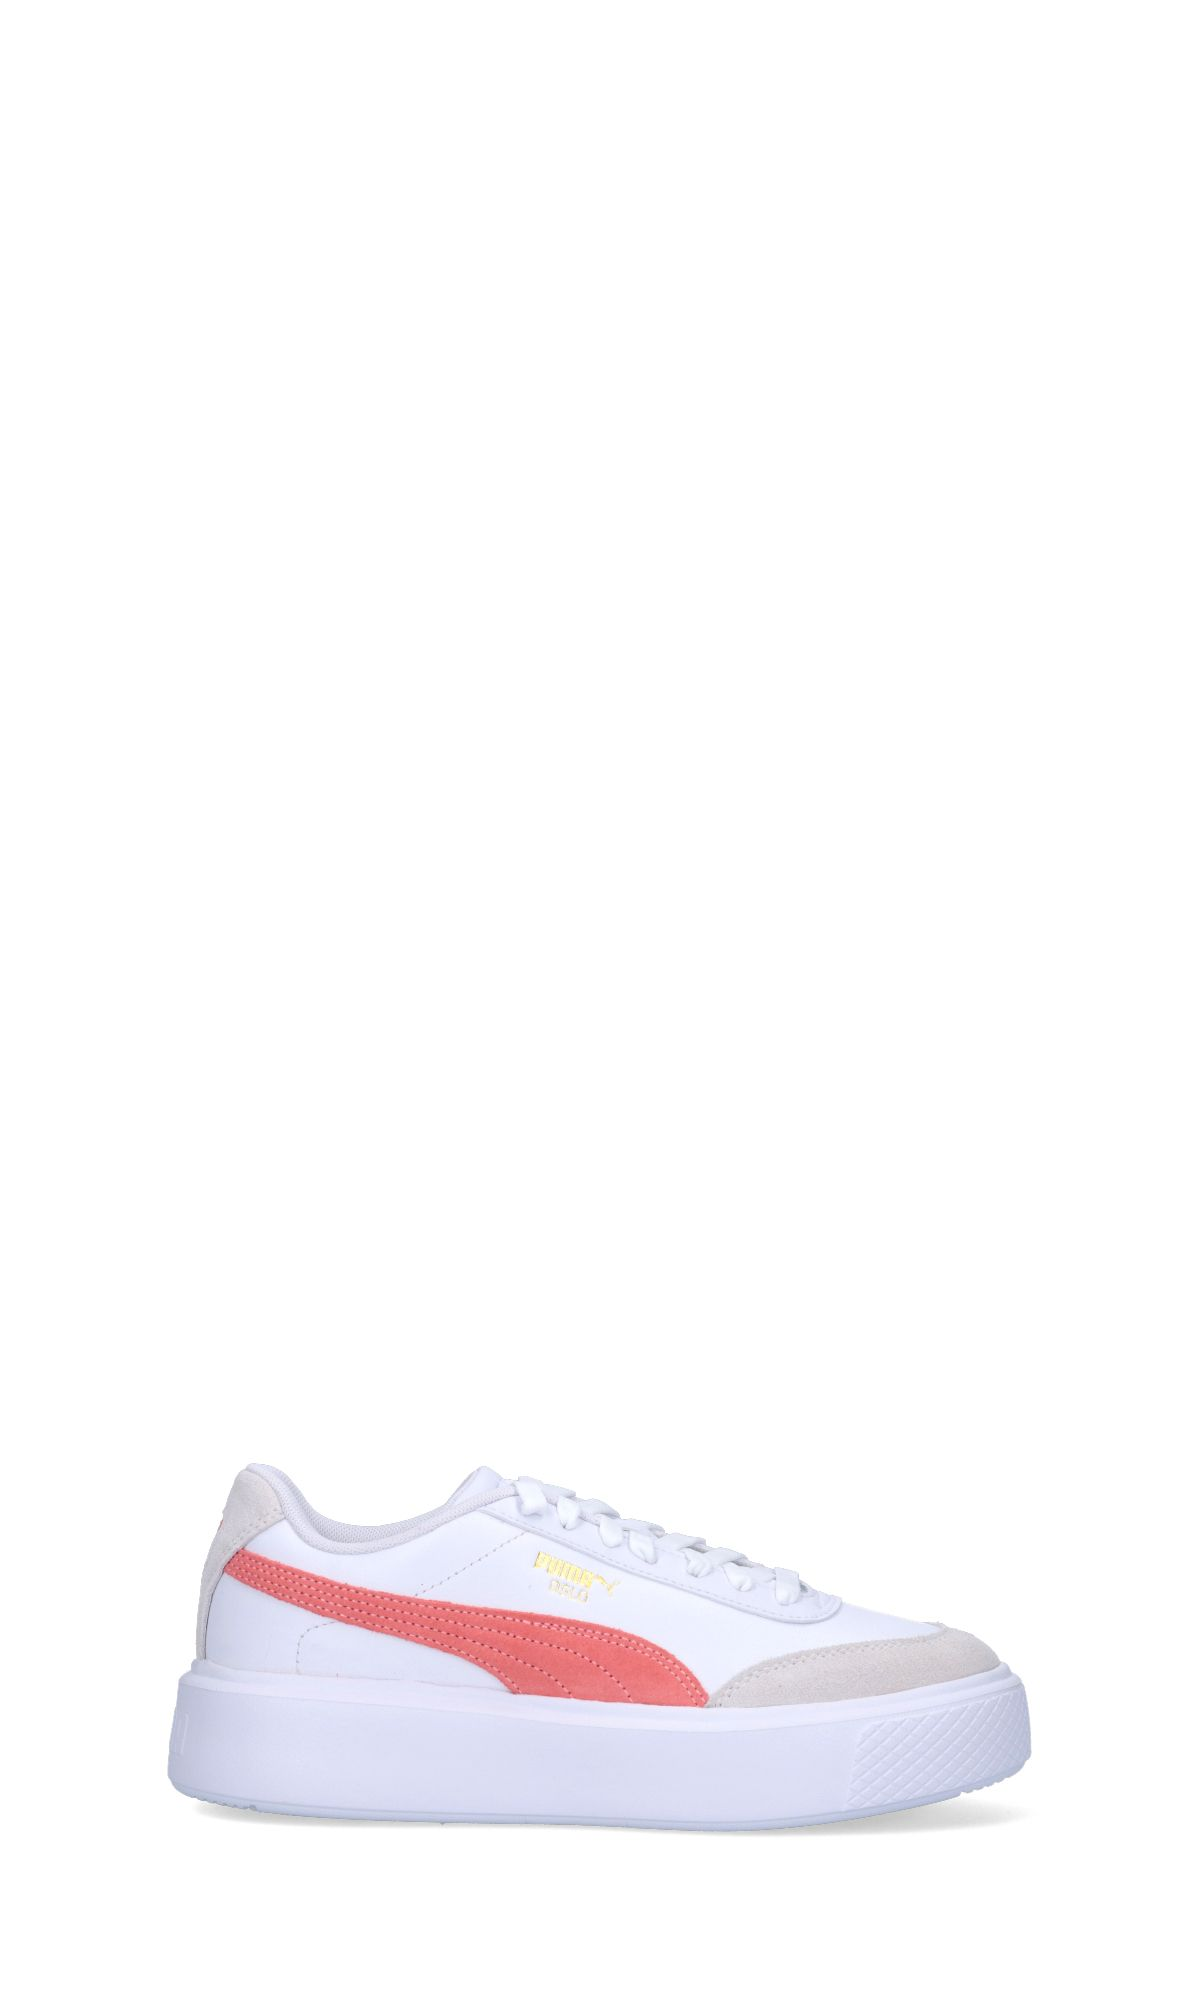 Puma PUMA WOMEN'S WHITE LEATHER SNEAKERS